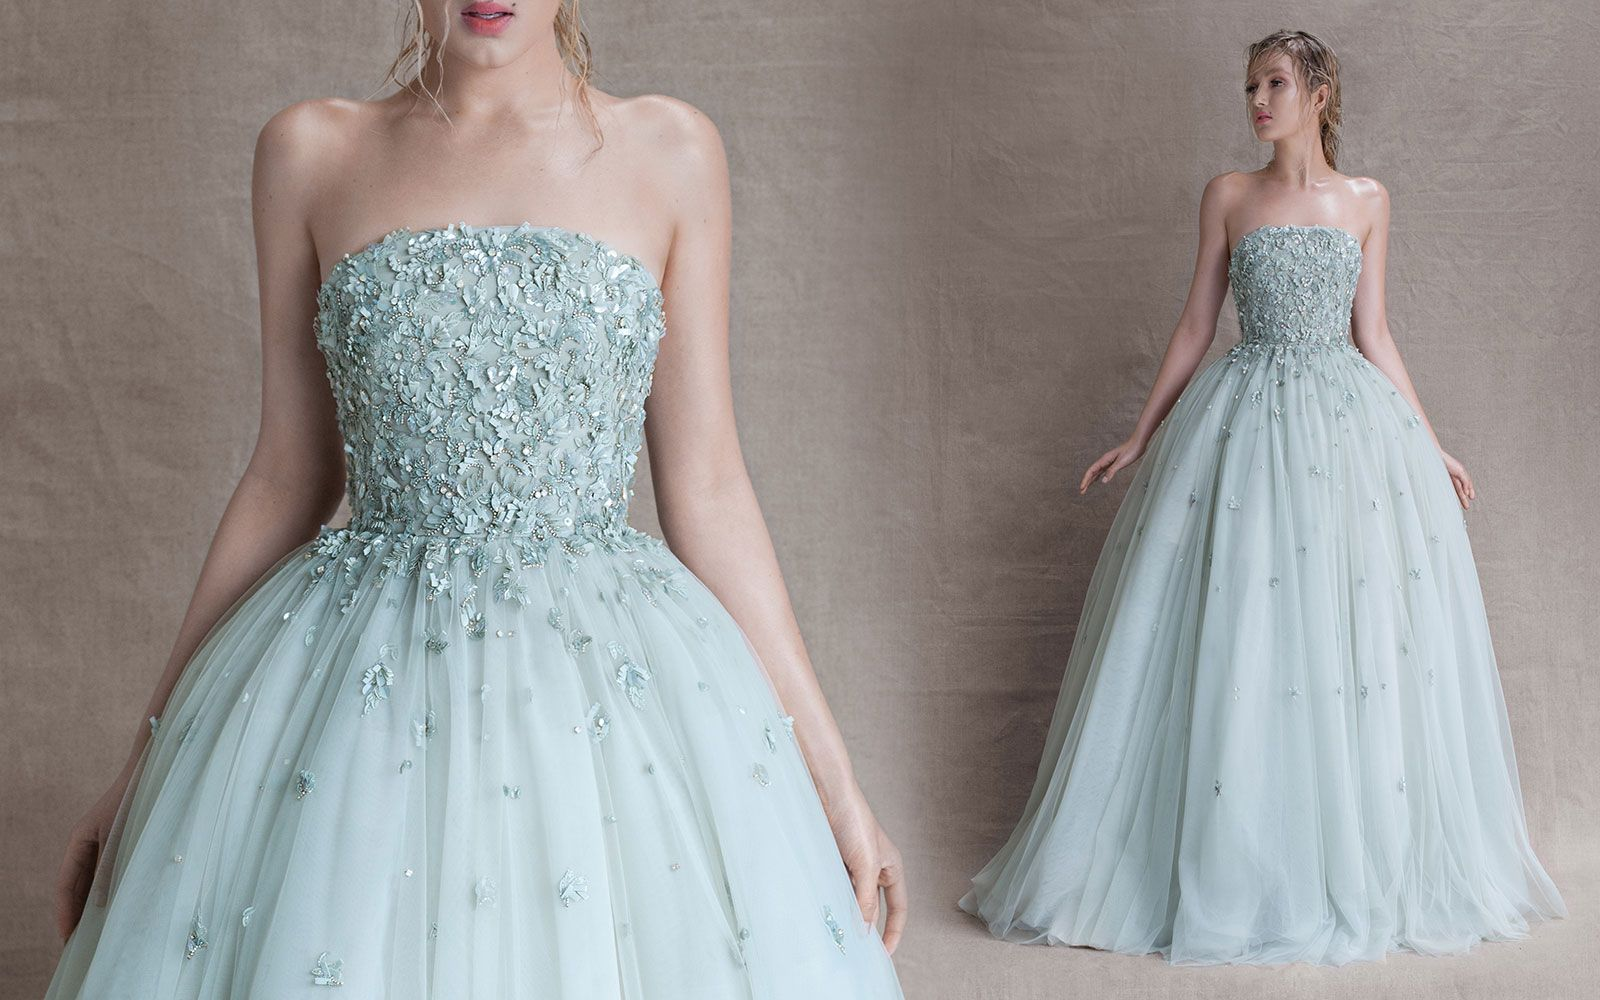 Luxury Finsbury Park Bridesmaid Dresses Photo - Wedding Dress Ideas ...